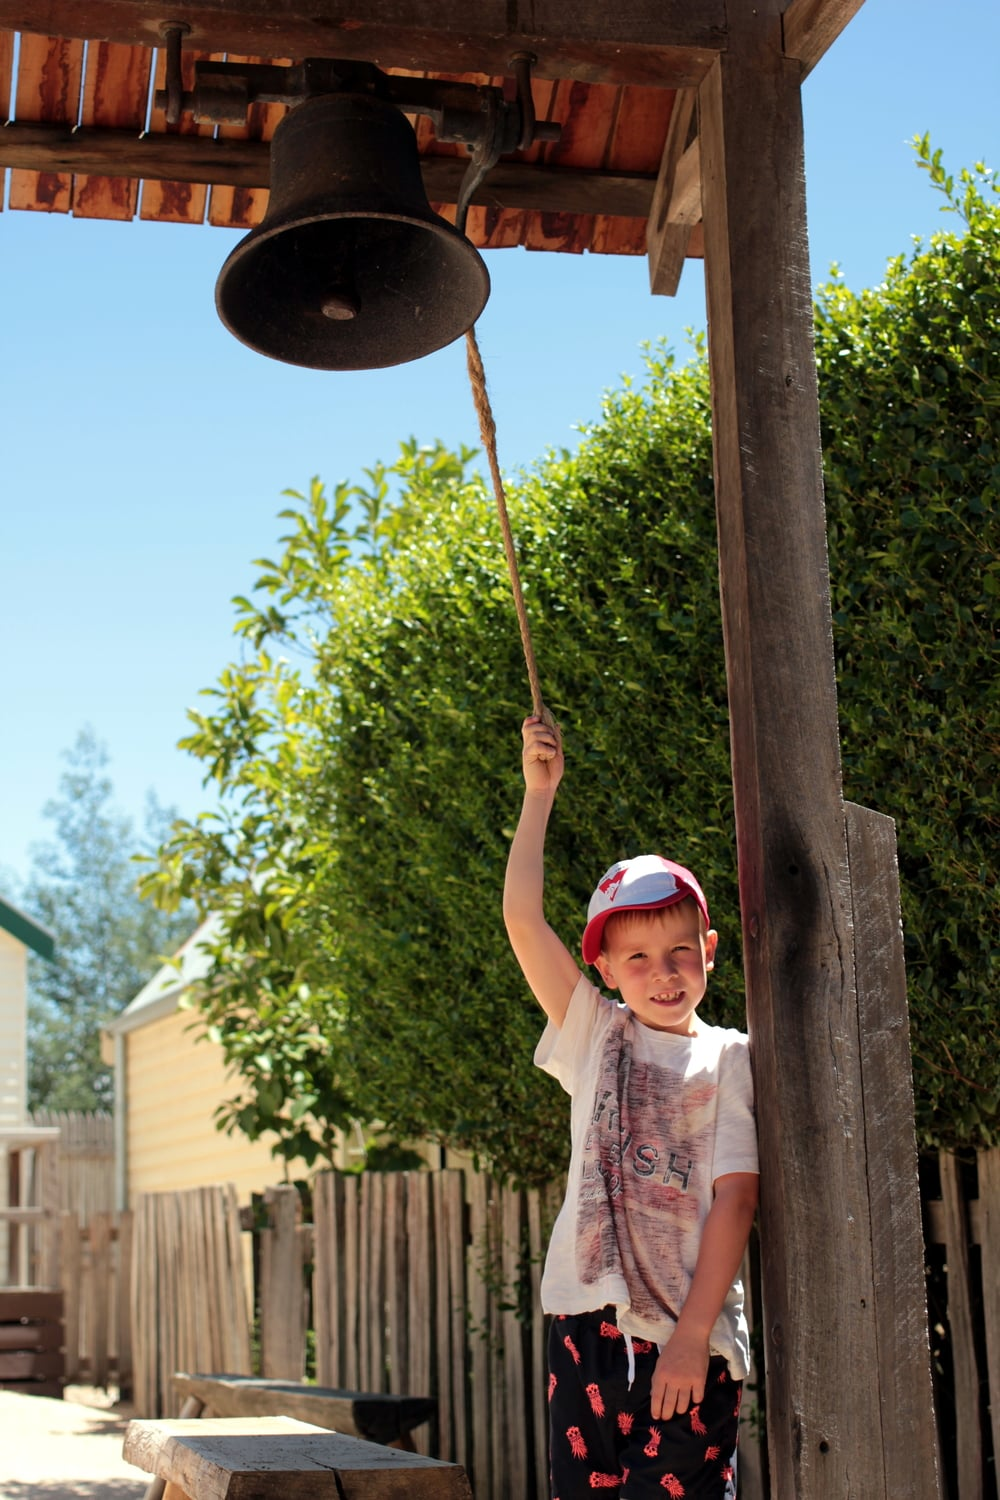 Ringing the school bell.